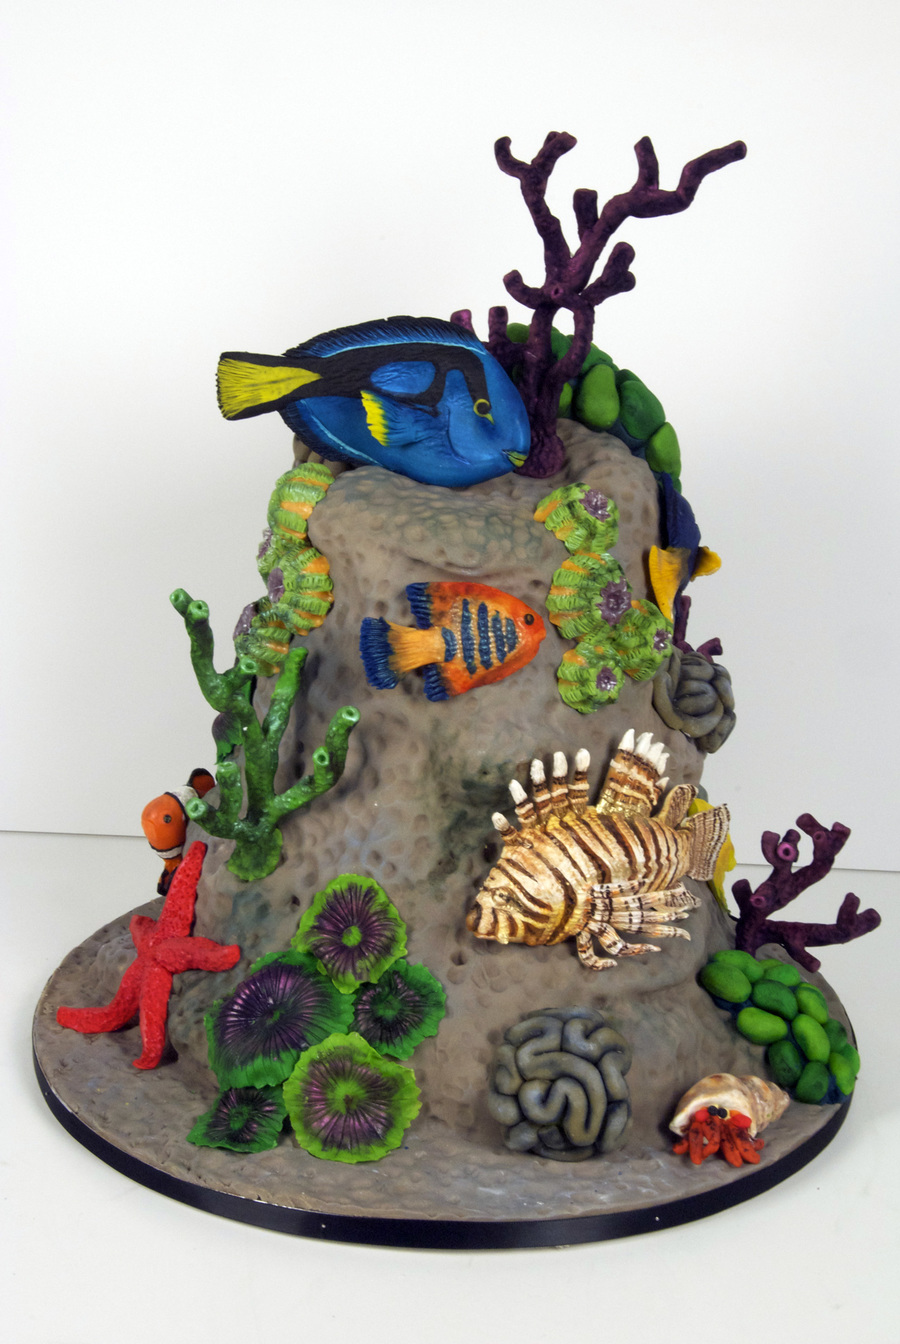 Coral Fish Cake on Cake Central